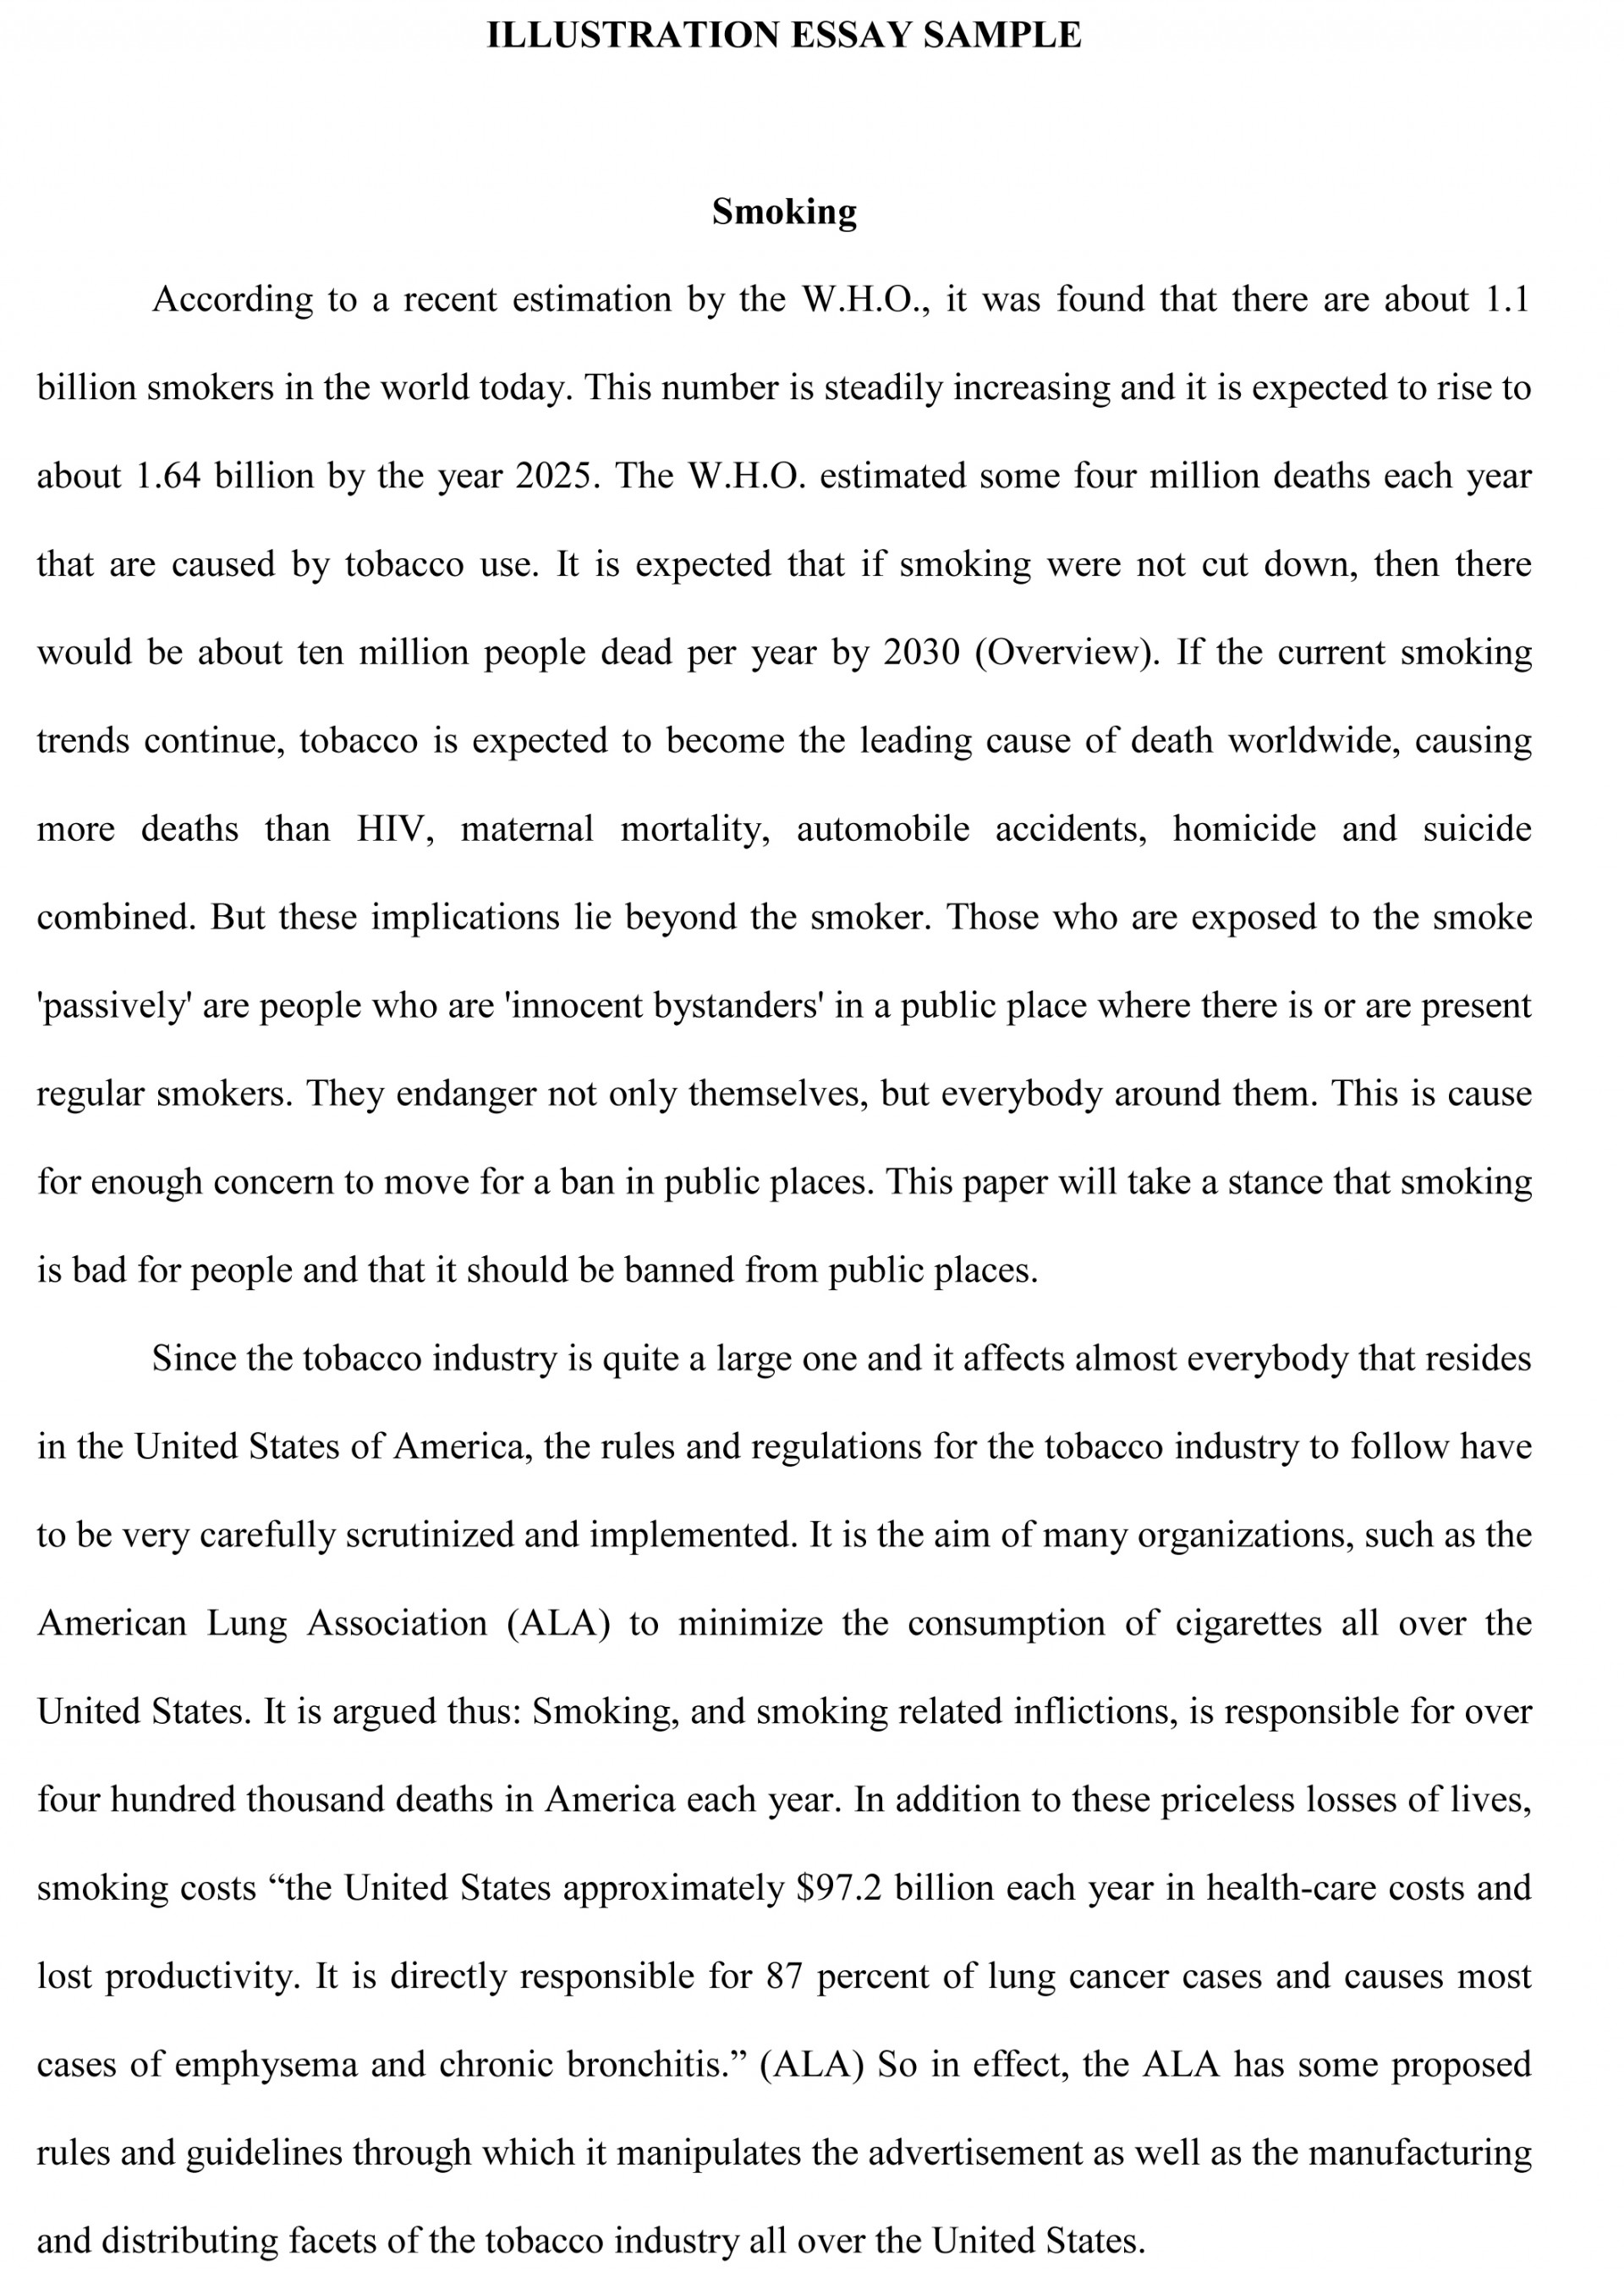 019 Illustration Essay Sample Example Humorous Outstanding Essays Funny In English For High School On Marriage 1920